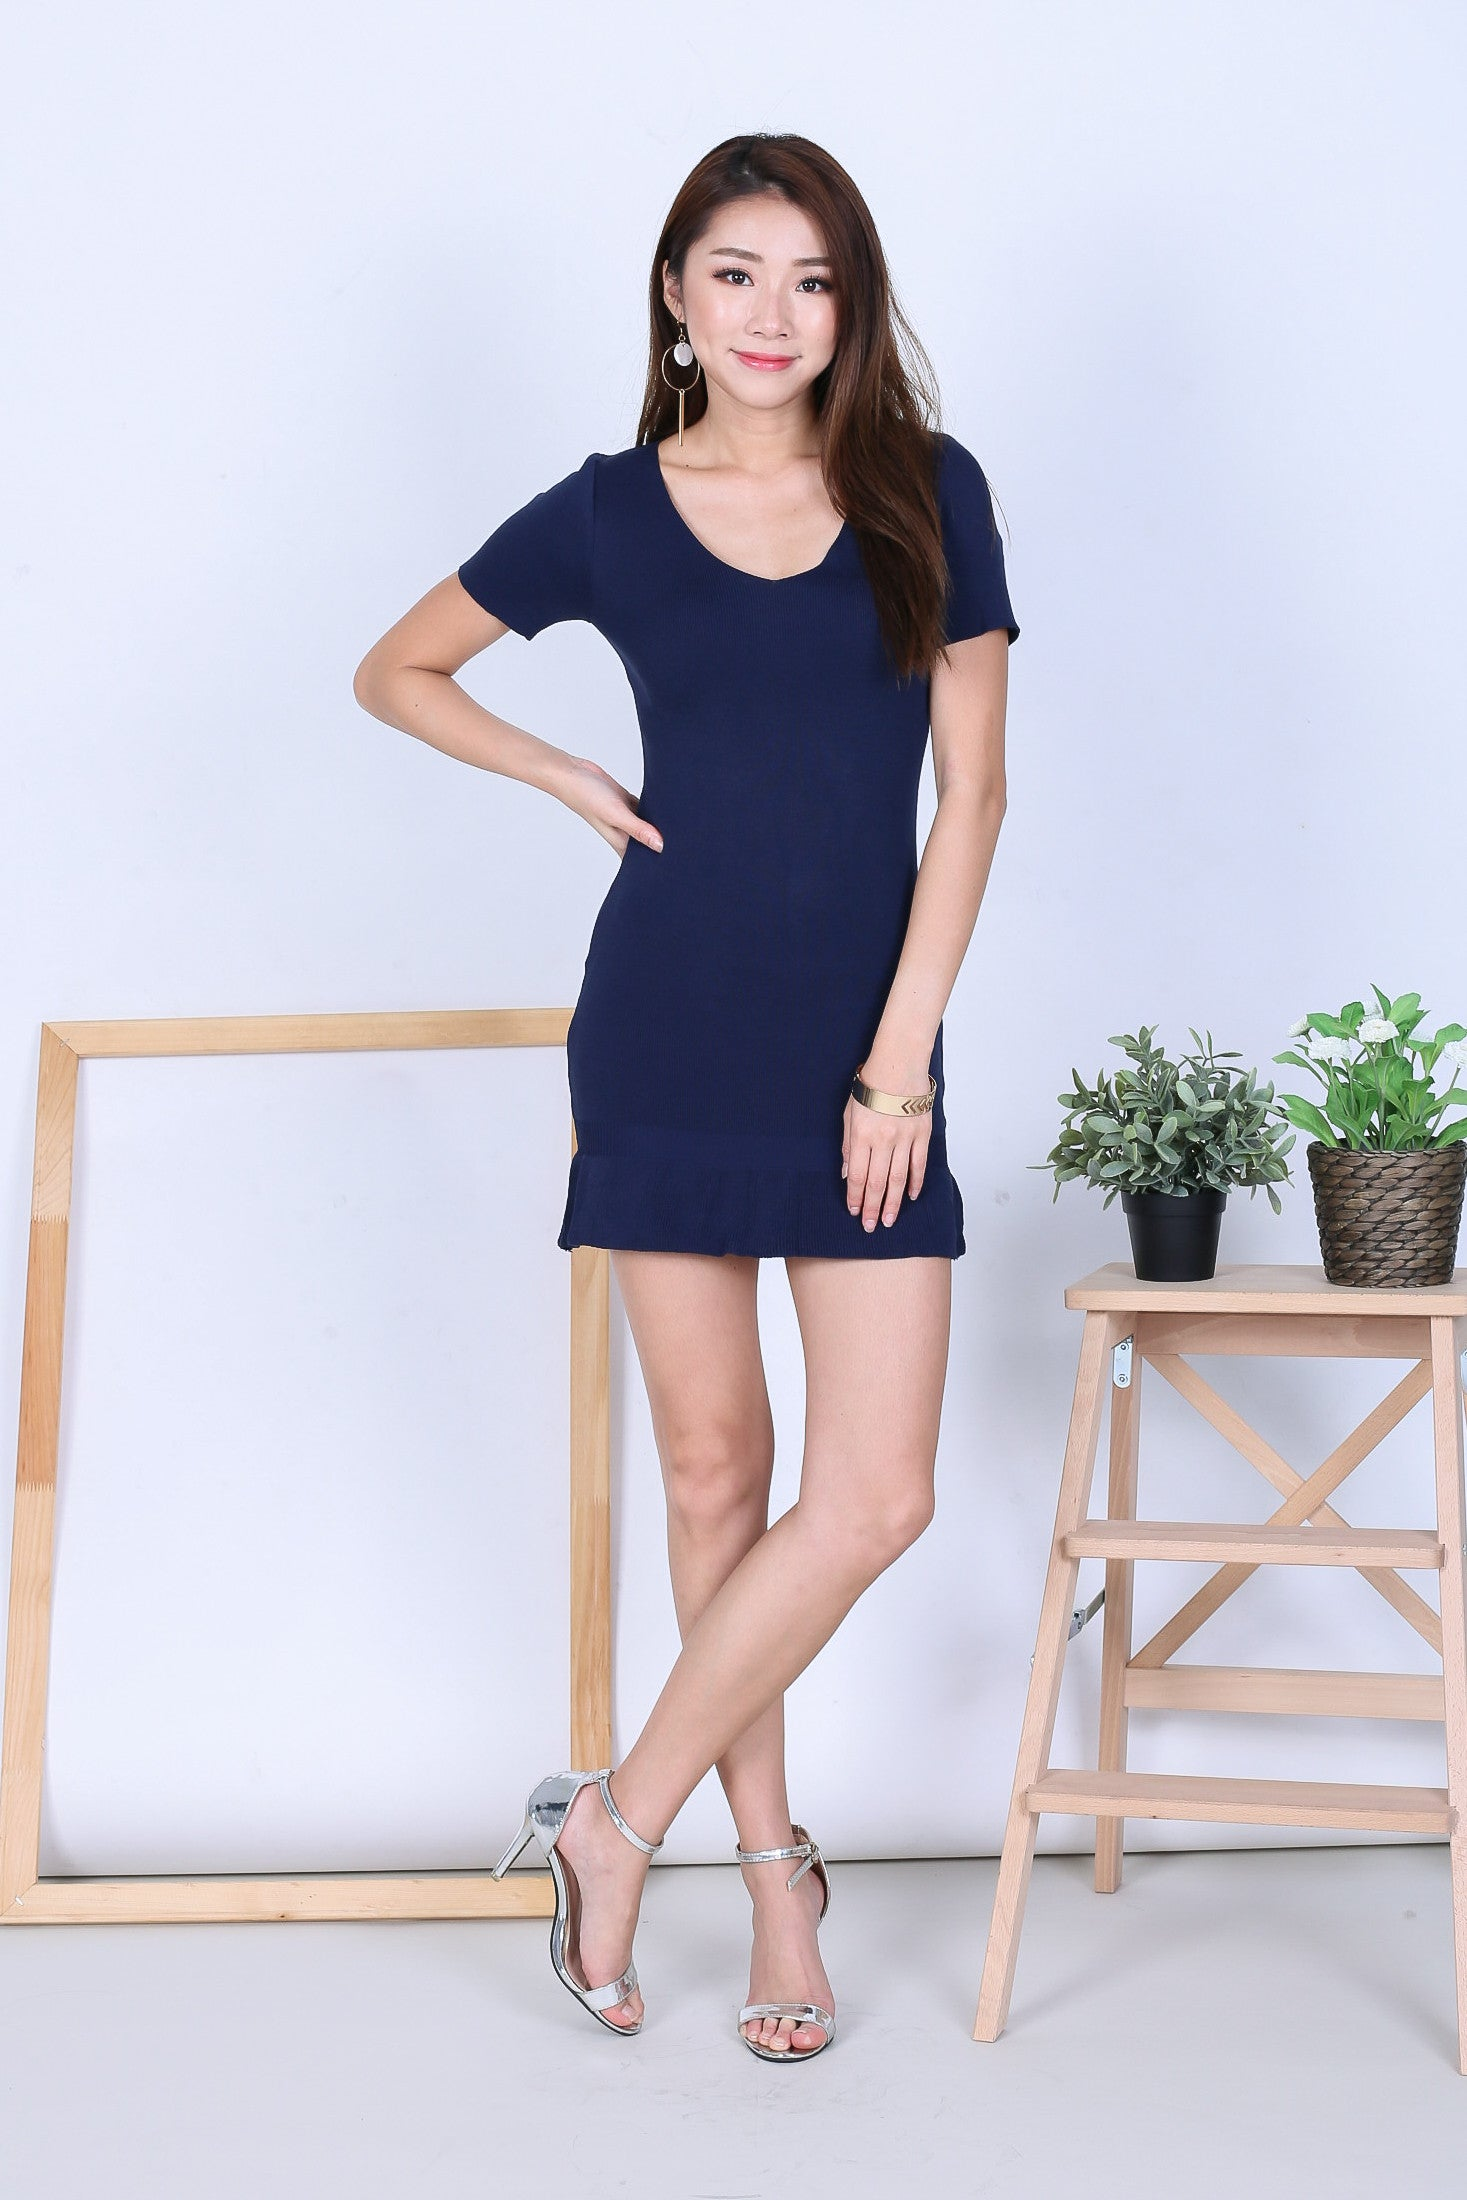 MERMAID SLEEVED DRESS V.2 IN NAVY - TOPAZETTE